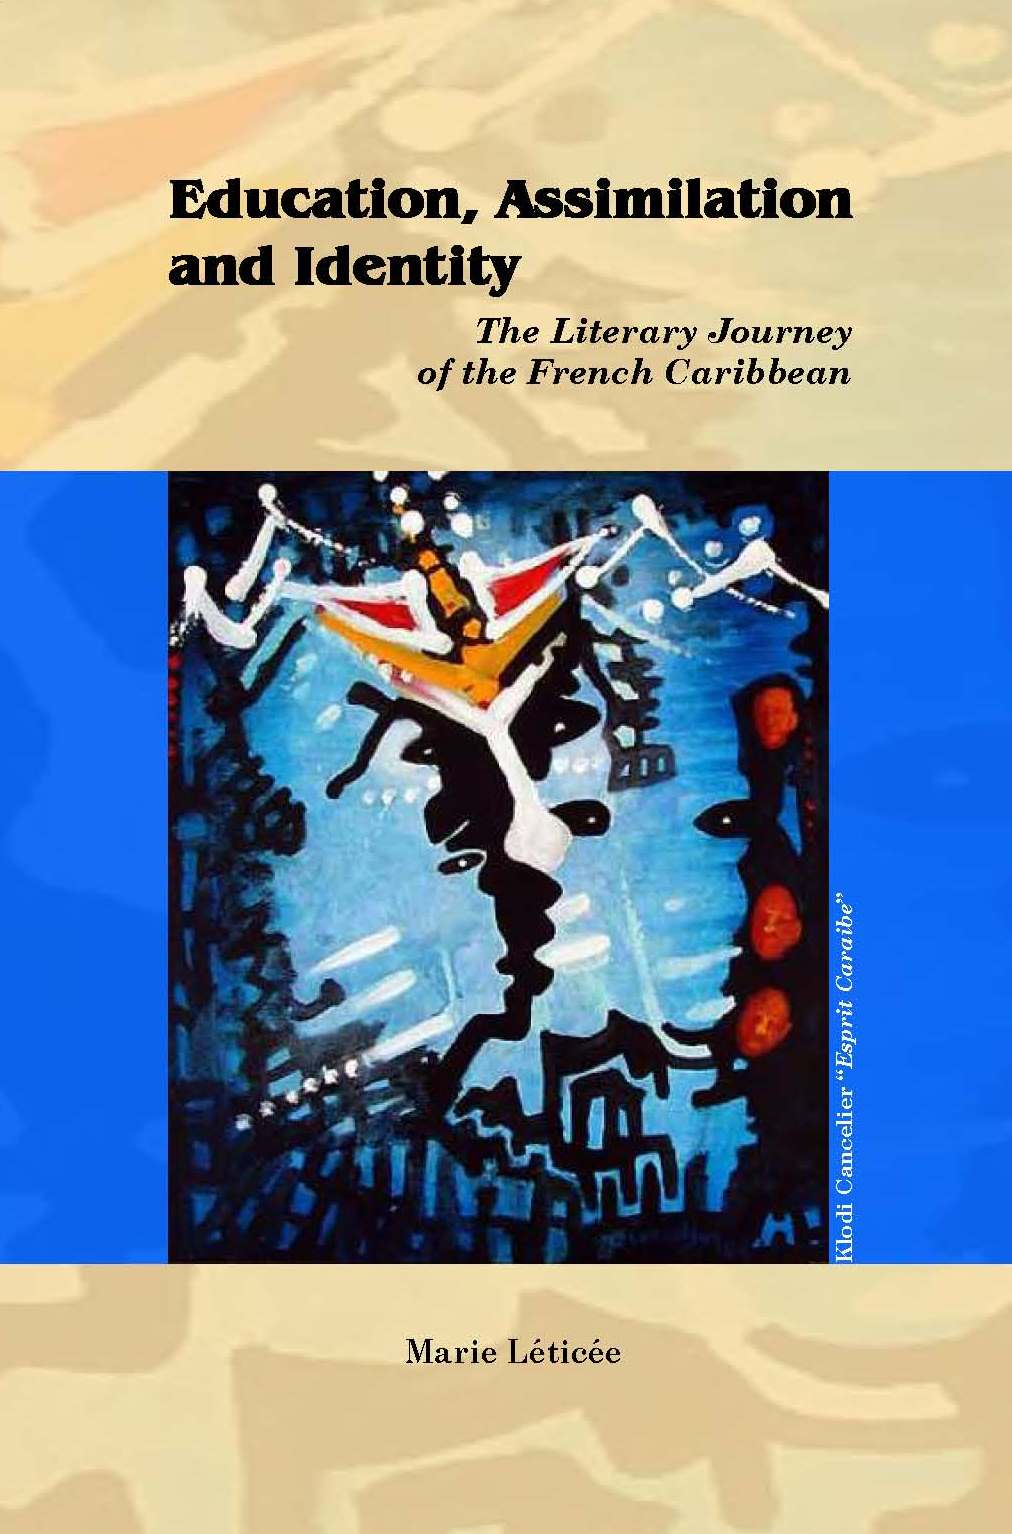 Education, Assimilation, and Caribbean Identity / The Literary Journey of the French Caribbean